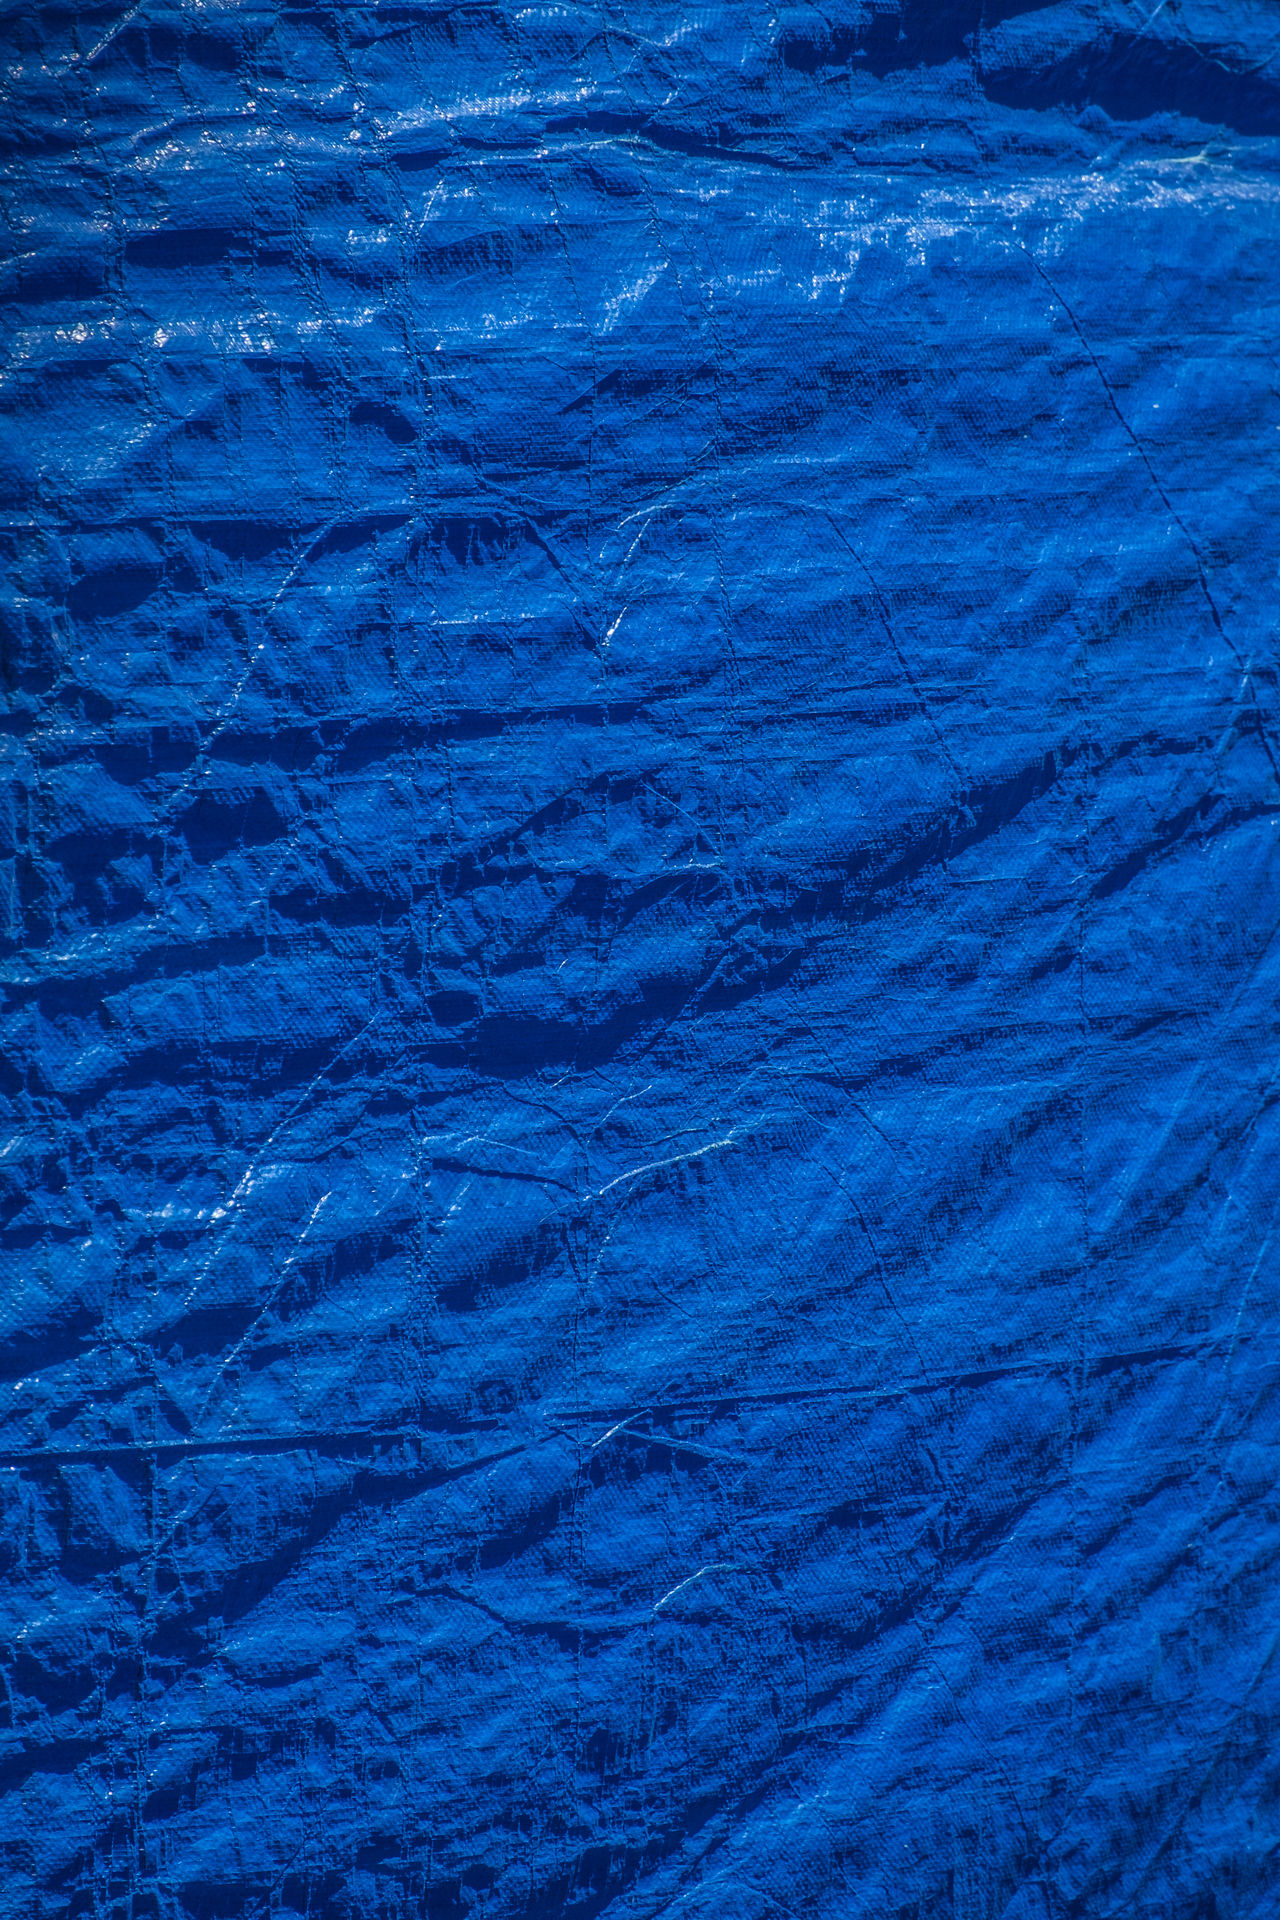 Bluemonday Abstract Backgrounds Blue Blue Monday Bluemonday Close-up Full Frame Material Minimal Minimalism Minimalobsession One Color Pattern Pattern, Texture, Shape And Form Project Blue Simplicity Textile Textured  Textured Effect Textures And Surfaces